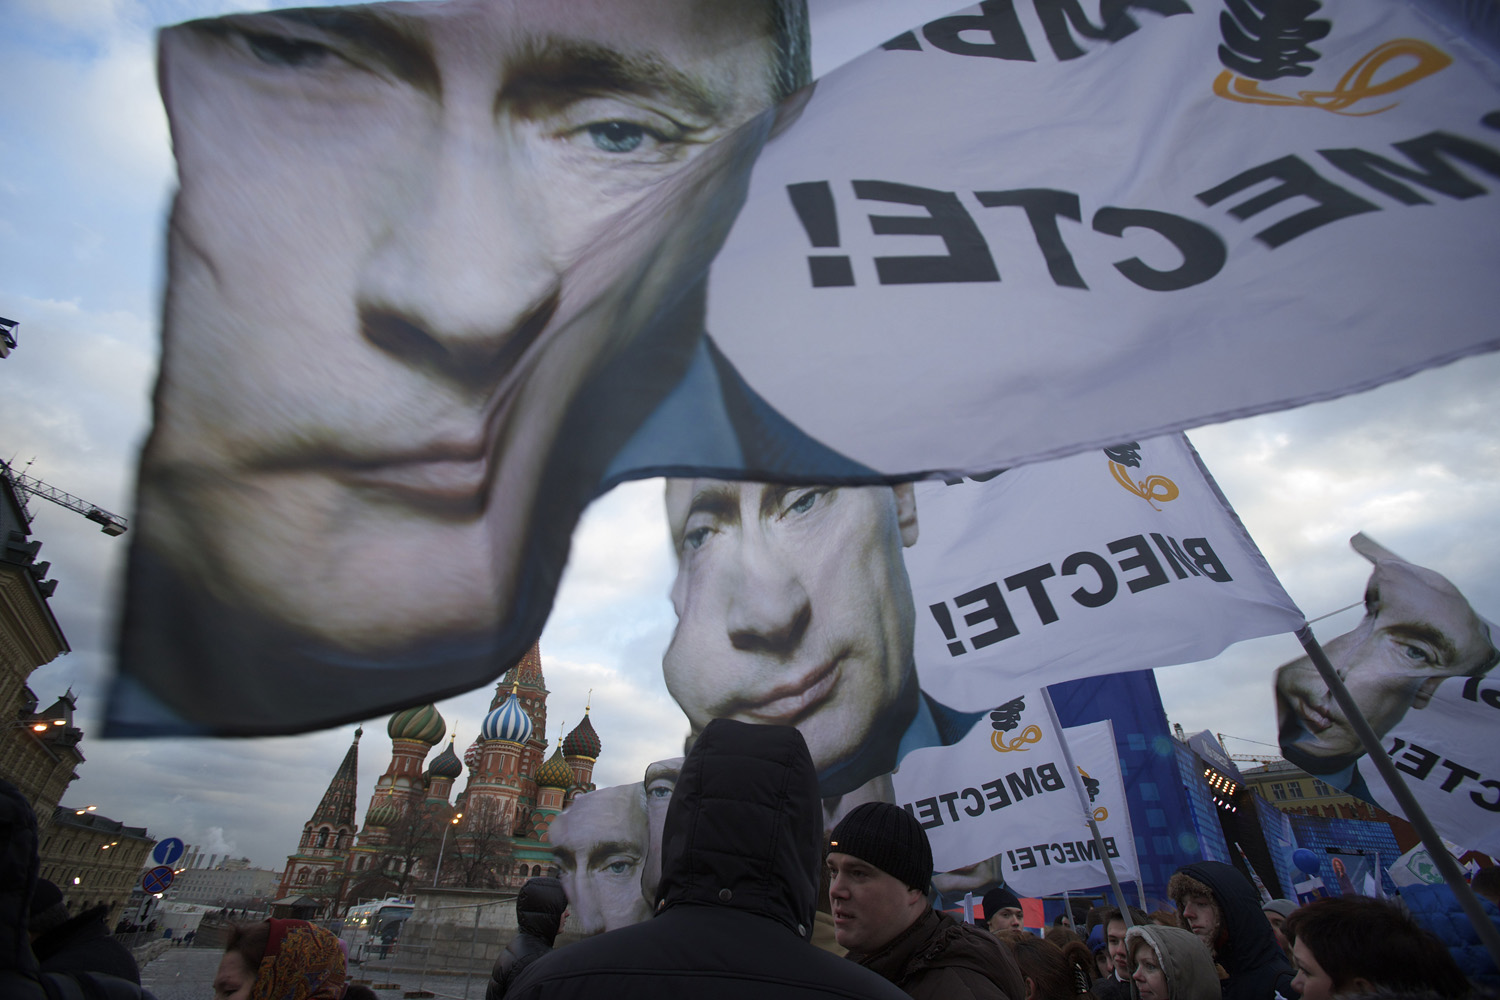 Mar. 18, 2014. People rally in support of Crimea joining Russia, with banners and portraits of Russian President Vladimir Putin, reading  We are together,  in Moscow's Red Square. Putin added Crimea to the map of Russia on Tuesday, describing the move as correcting past injustice and responding to what he called Western encroachment upon Russia's vital interests.